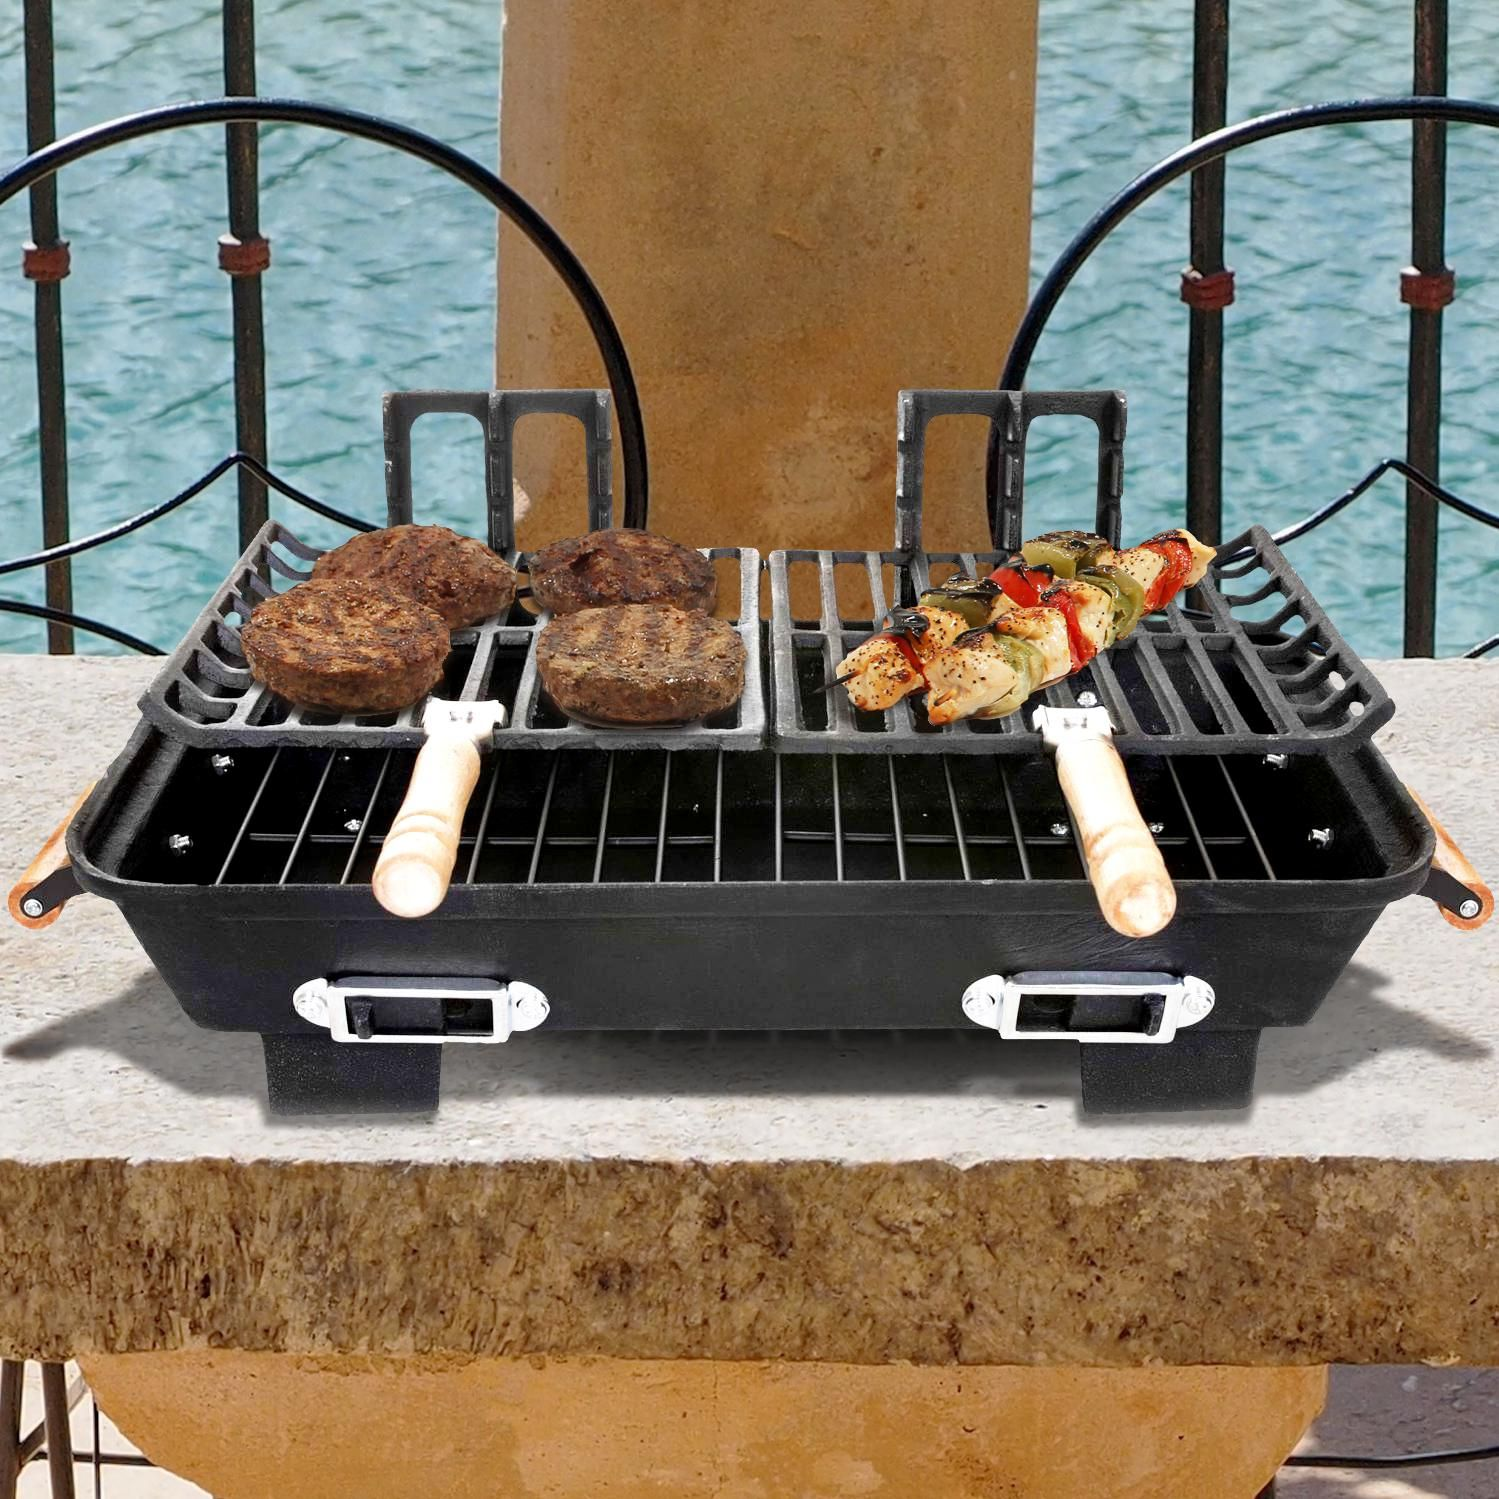 This Bbq Cast Iron Hibachi Charcoal Grill Features Two Multi